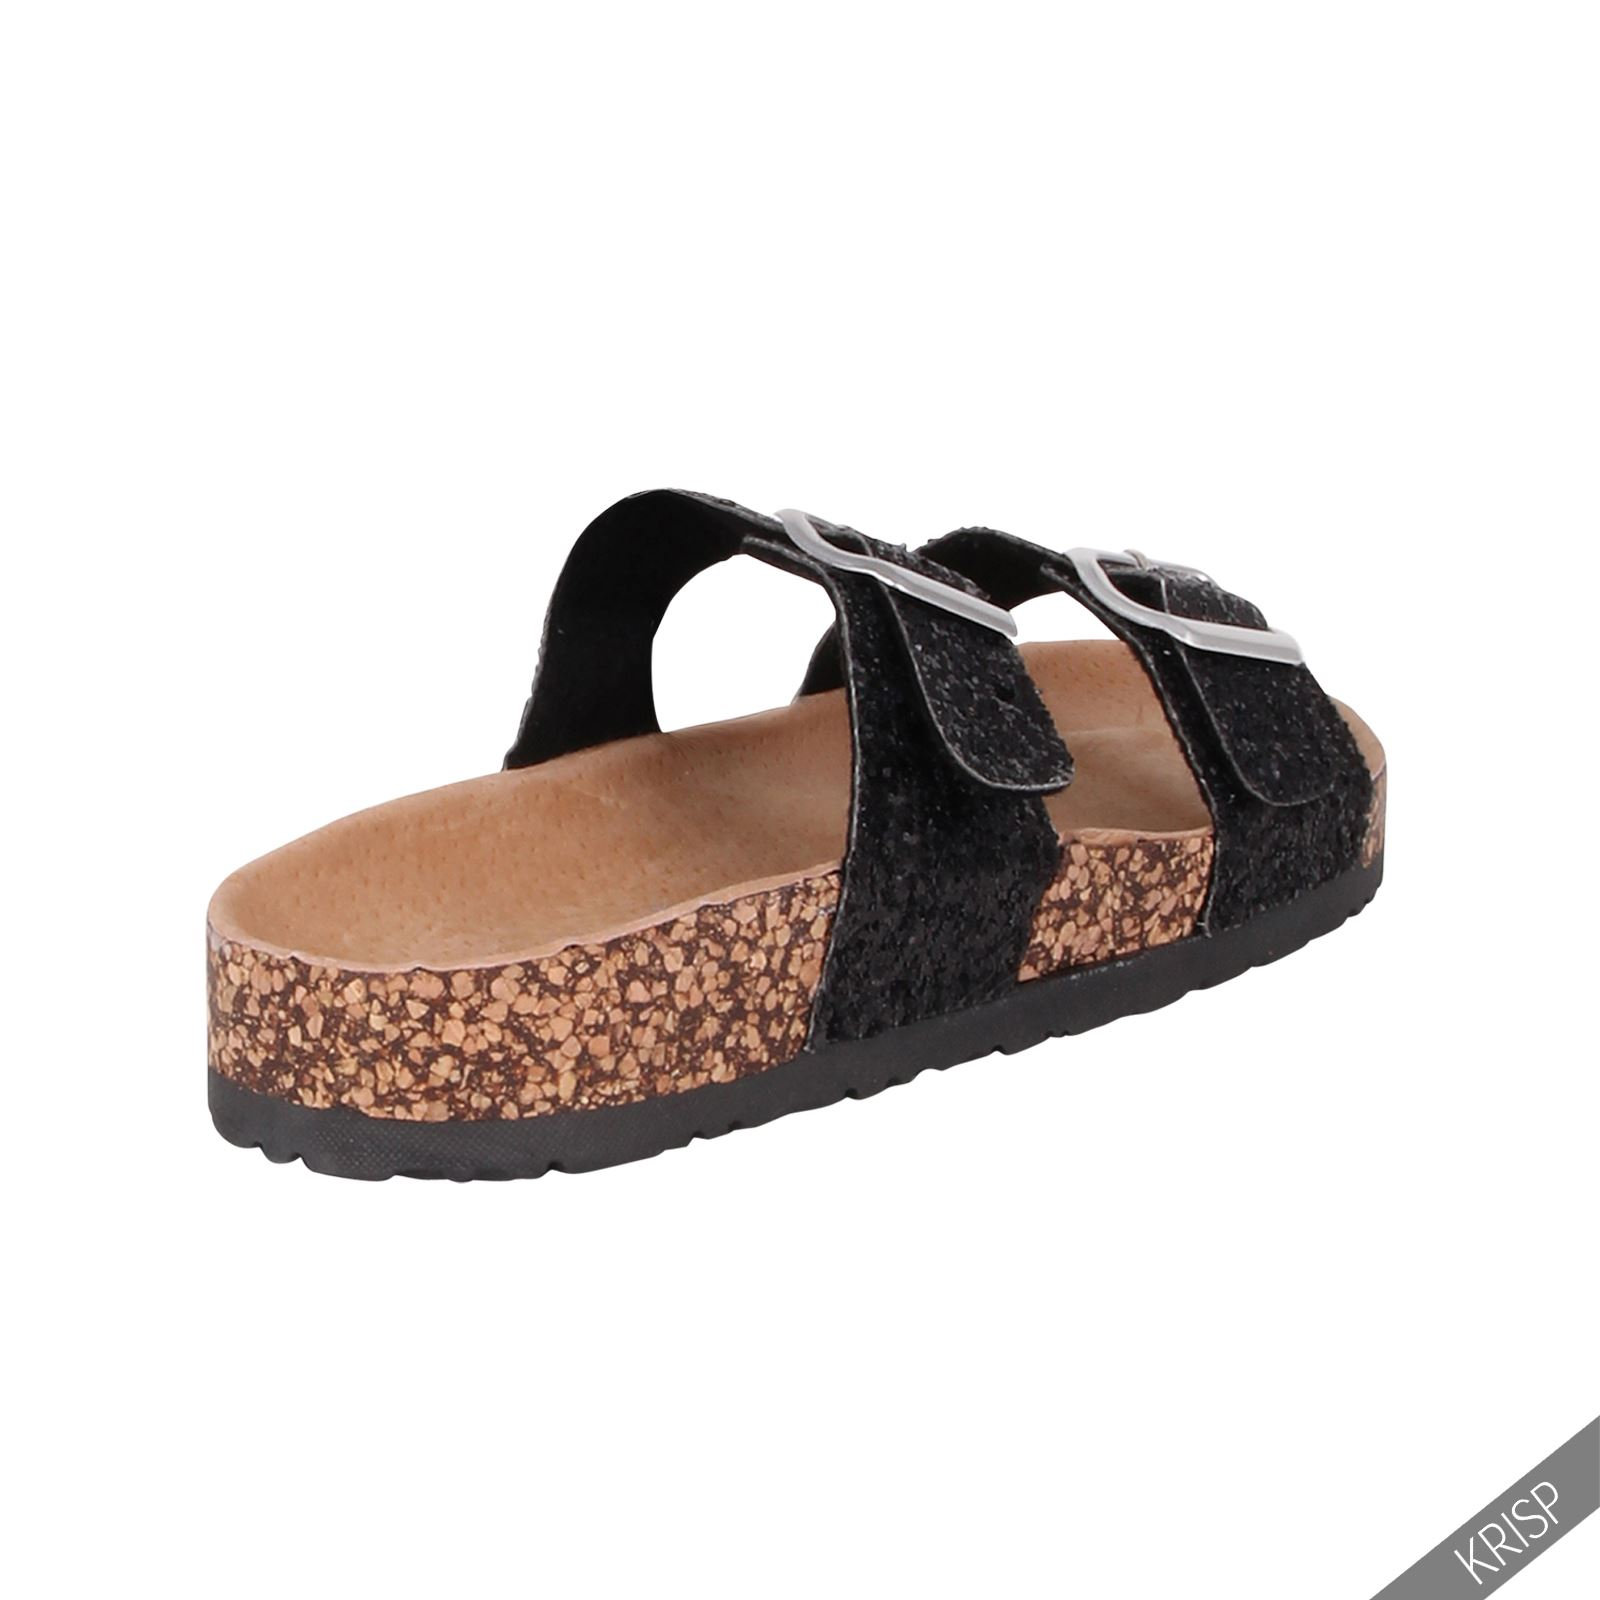 Crocs Classic Clogs Sandals Womens Summer Lightweight Padded Slip On Shoes Brand new genuine Crocs with tags from an authorised Crocs retailer, you can find us on the Crocs store locator. Slip into your favorite clog and enjoy a custom fit, water .